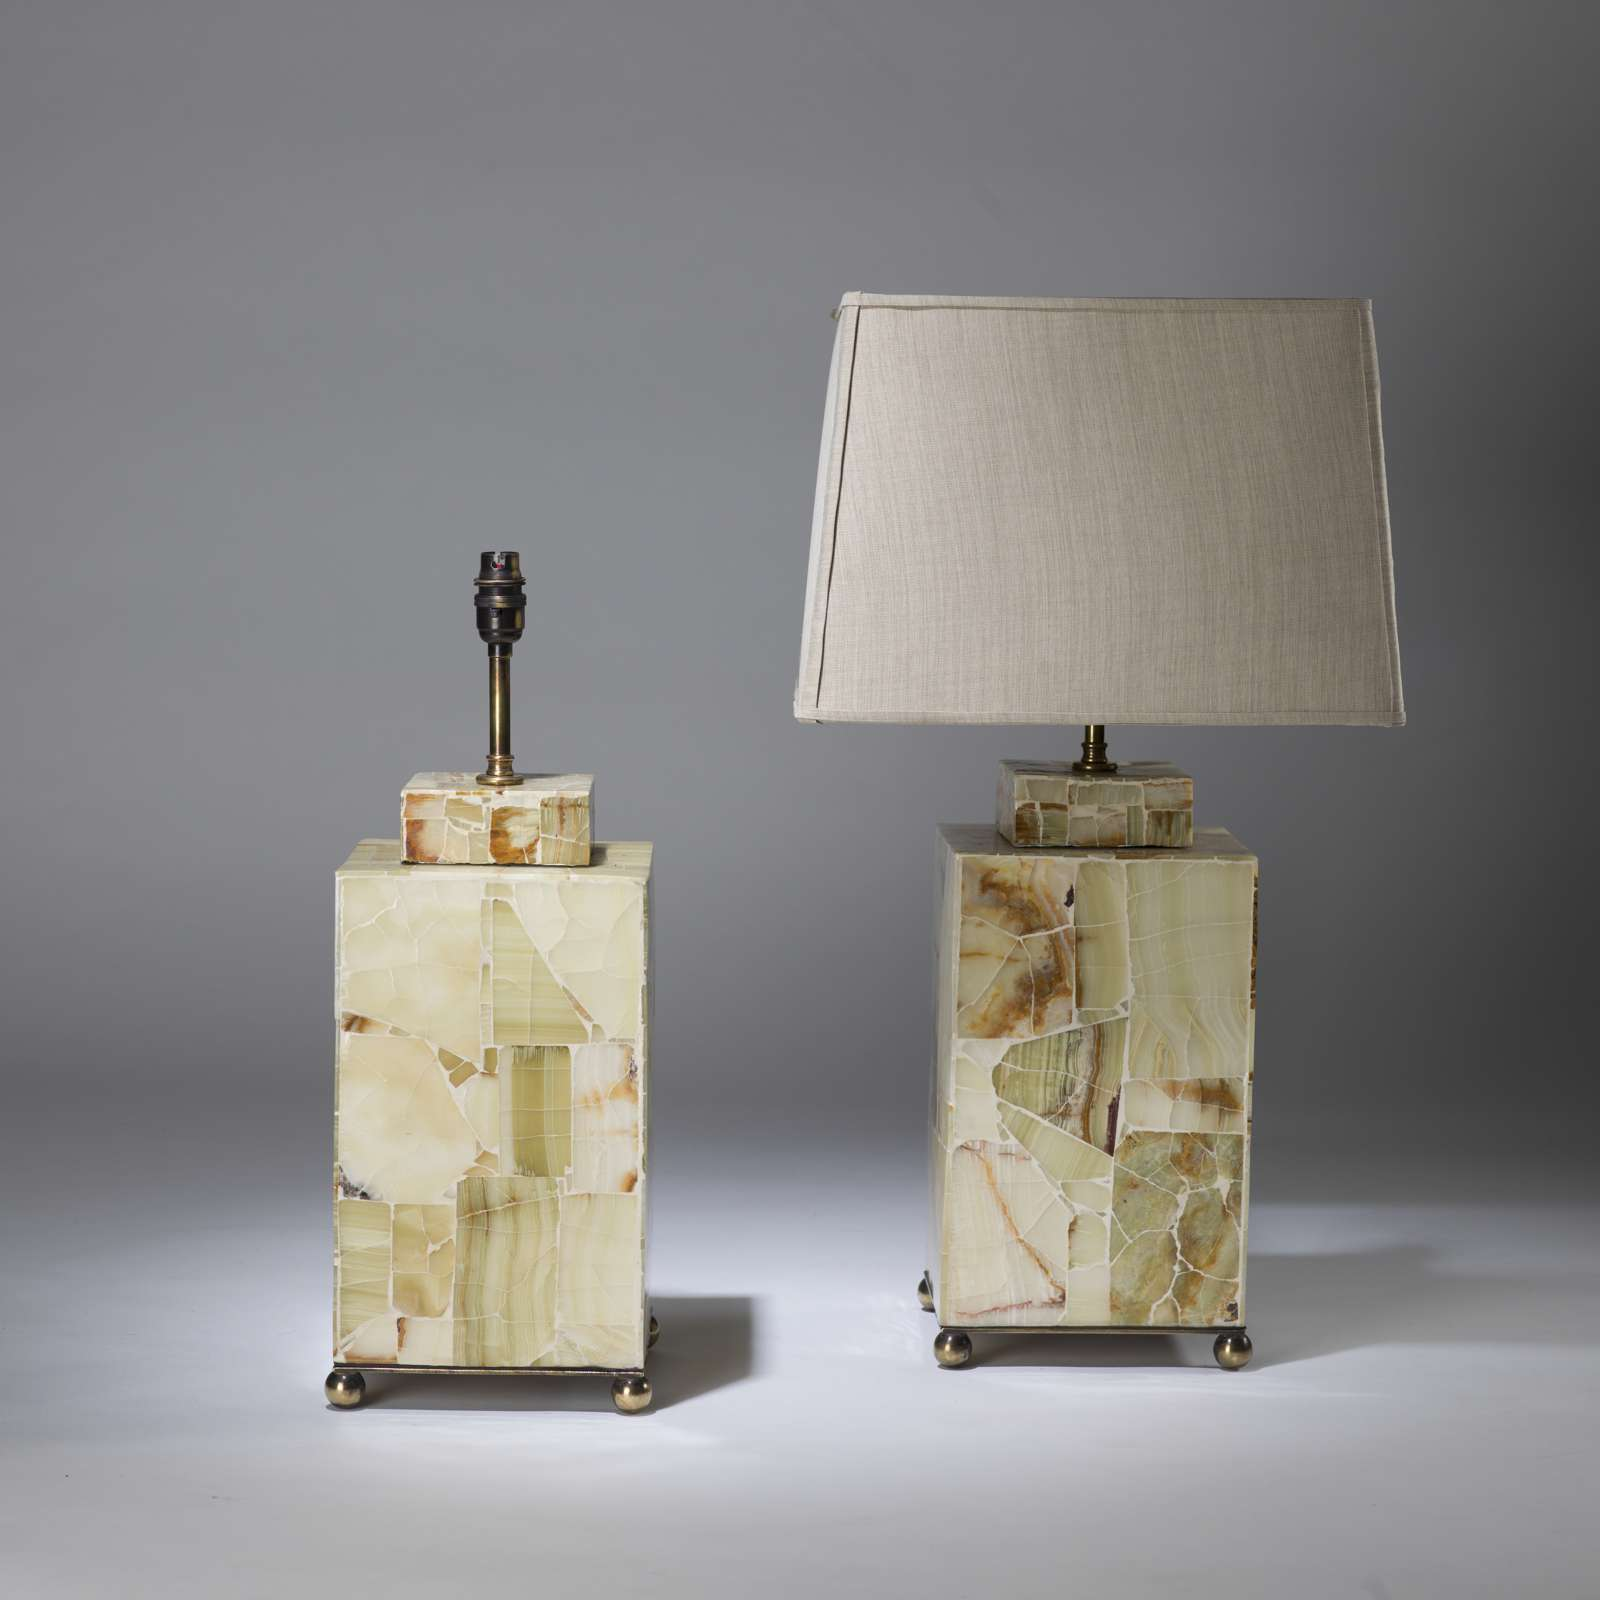 hunter interiors jana oyster lamps lamp shell img